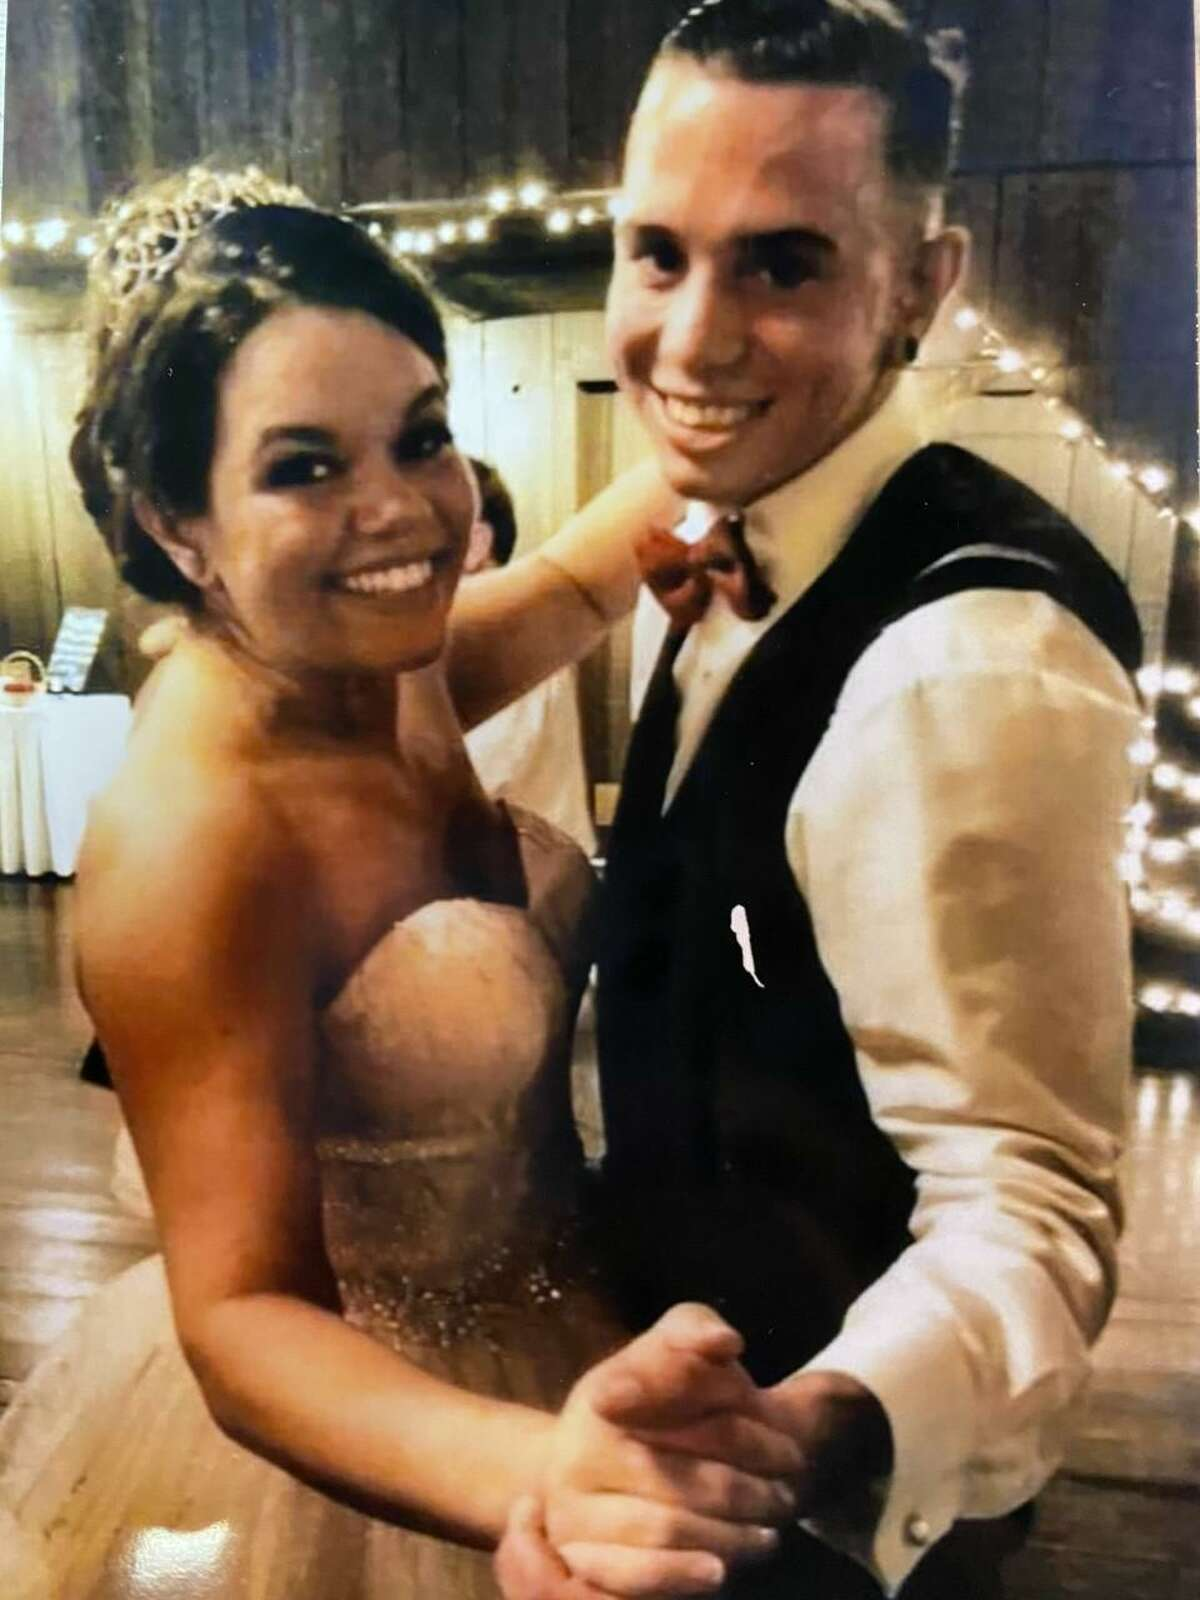 Vanessa Shimer and her brother, James Karcher. Karcher died nearly two years ago from an accidental Fentanyl overdose. Shimer, is holding a benefit in his honor on July 24, 2021, at Caloroso Eatery and Bar.